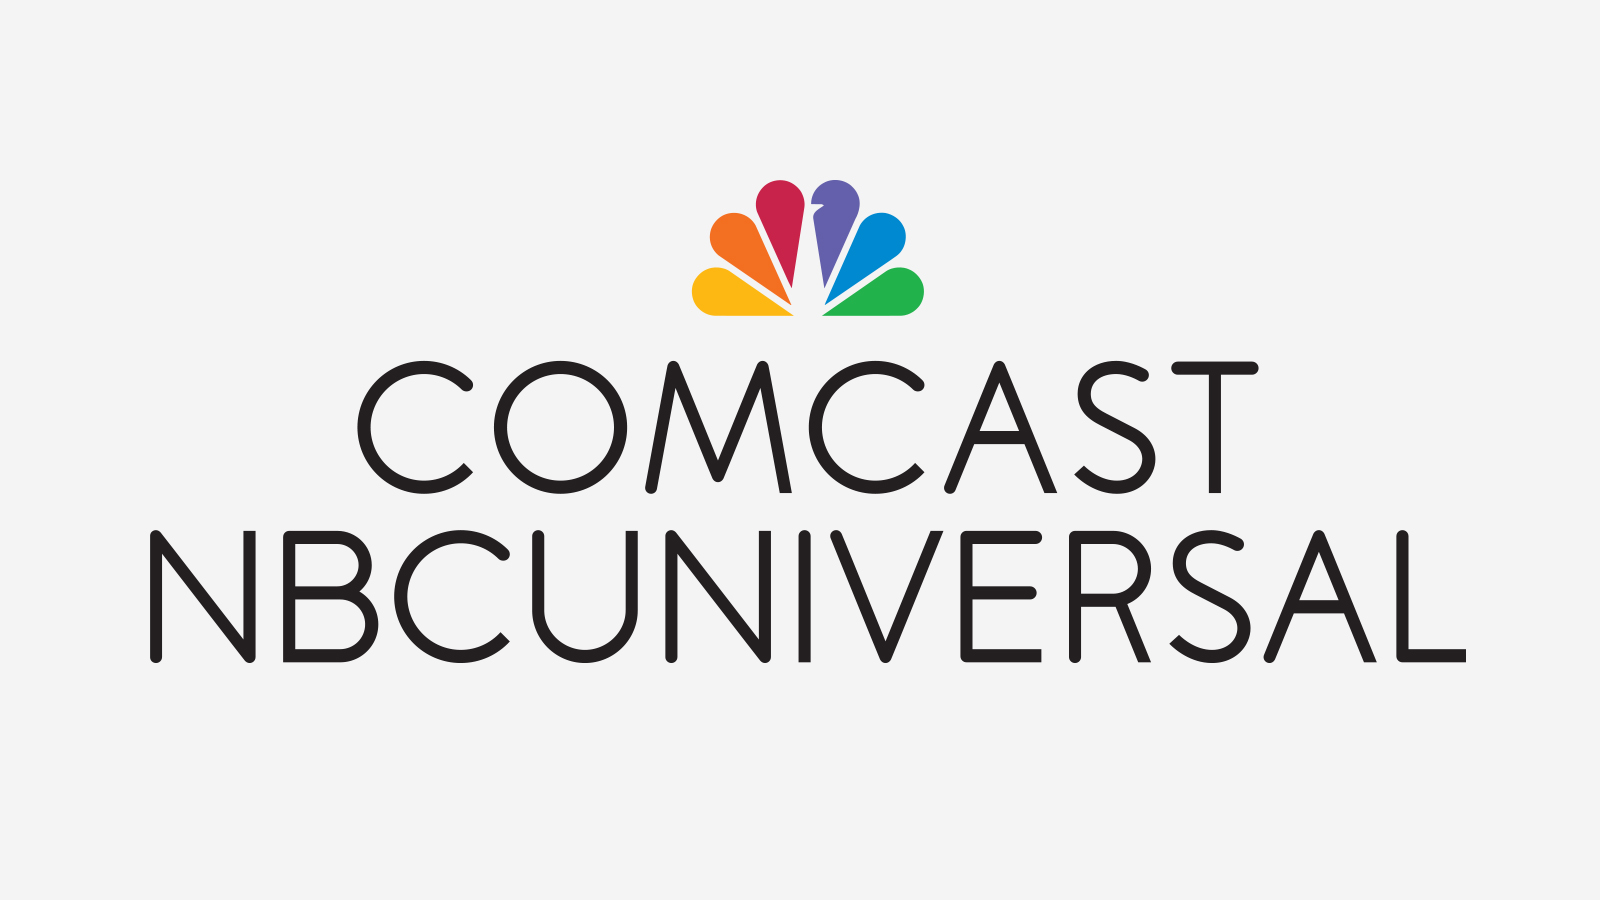 Comcast NBCUniversal Foundation